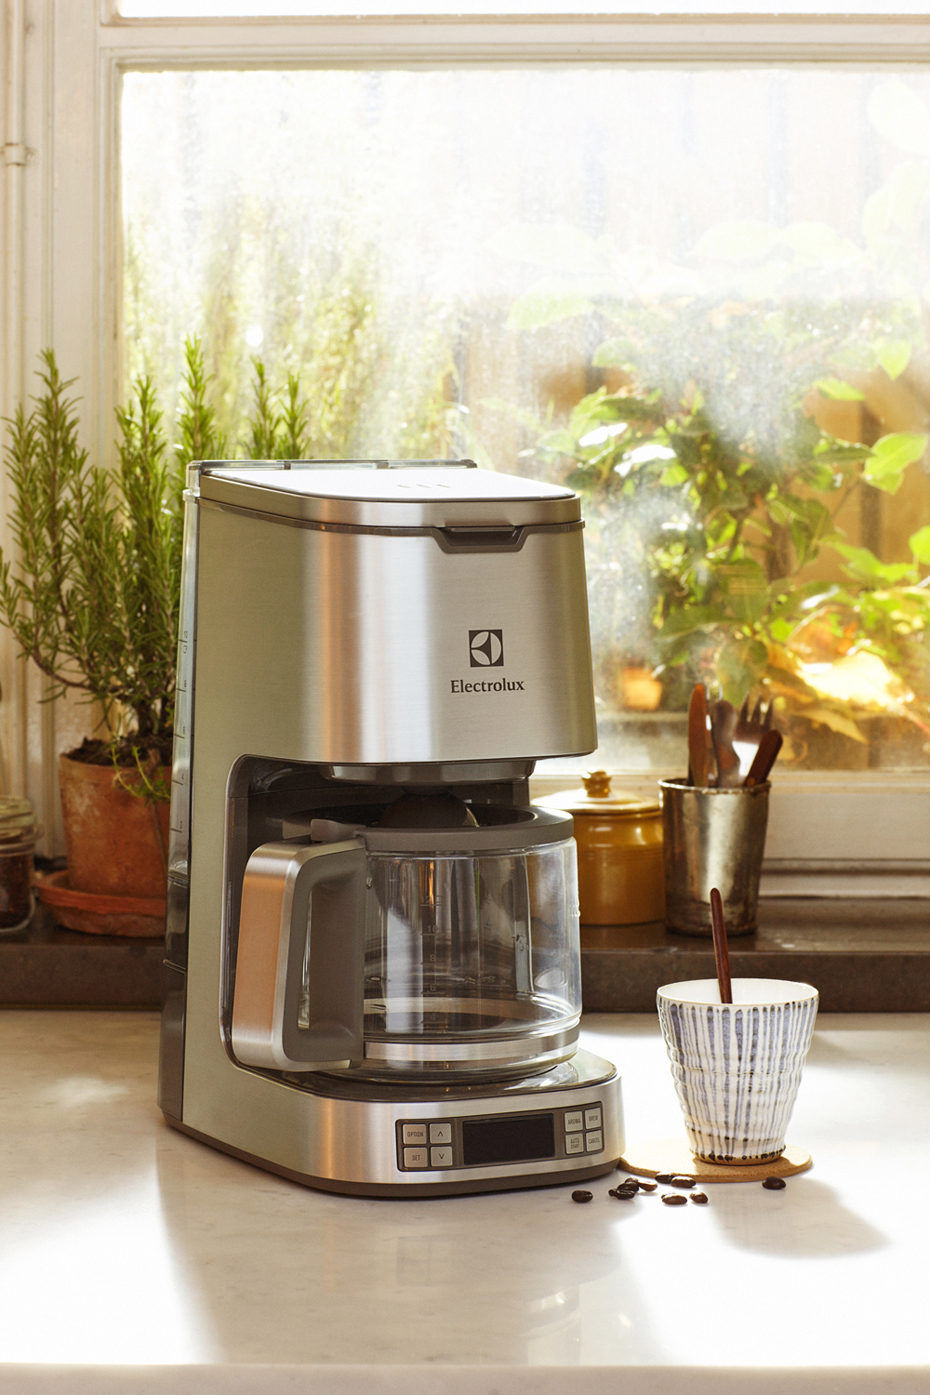 Electrolux_Expressionist_collection_Coffe-maker 930